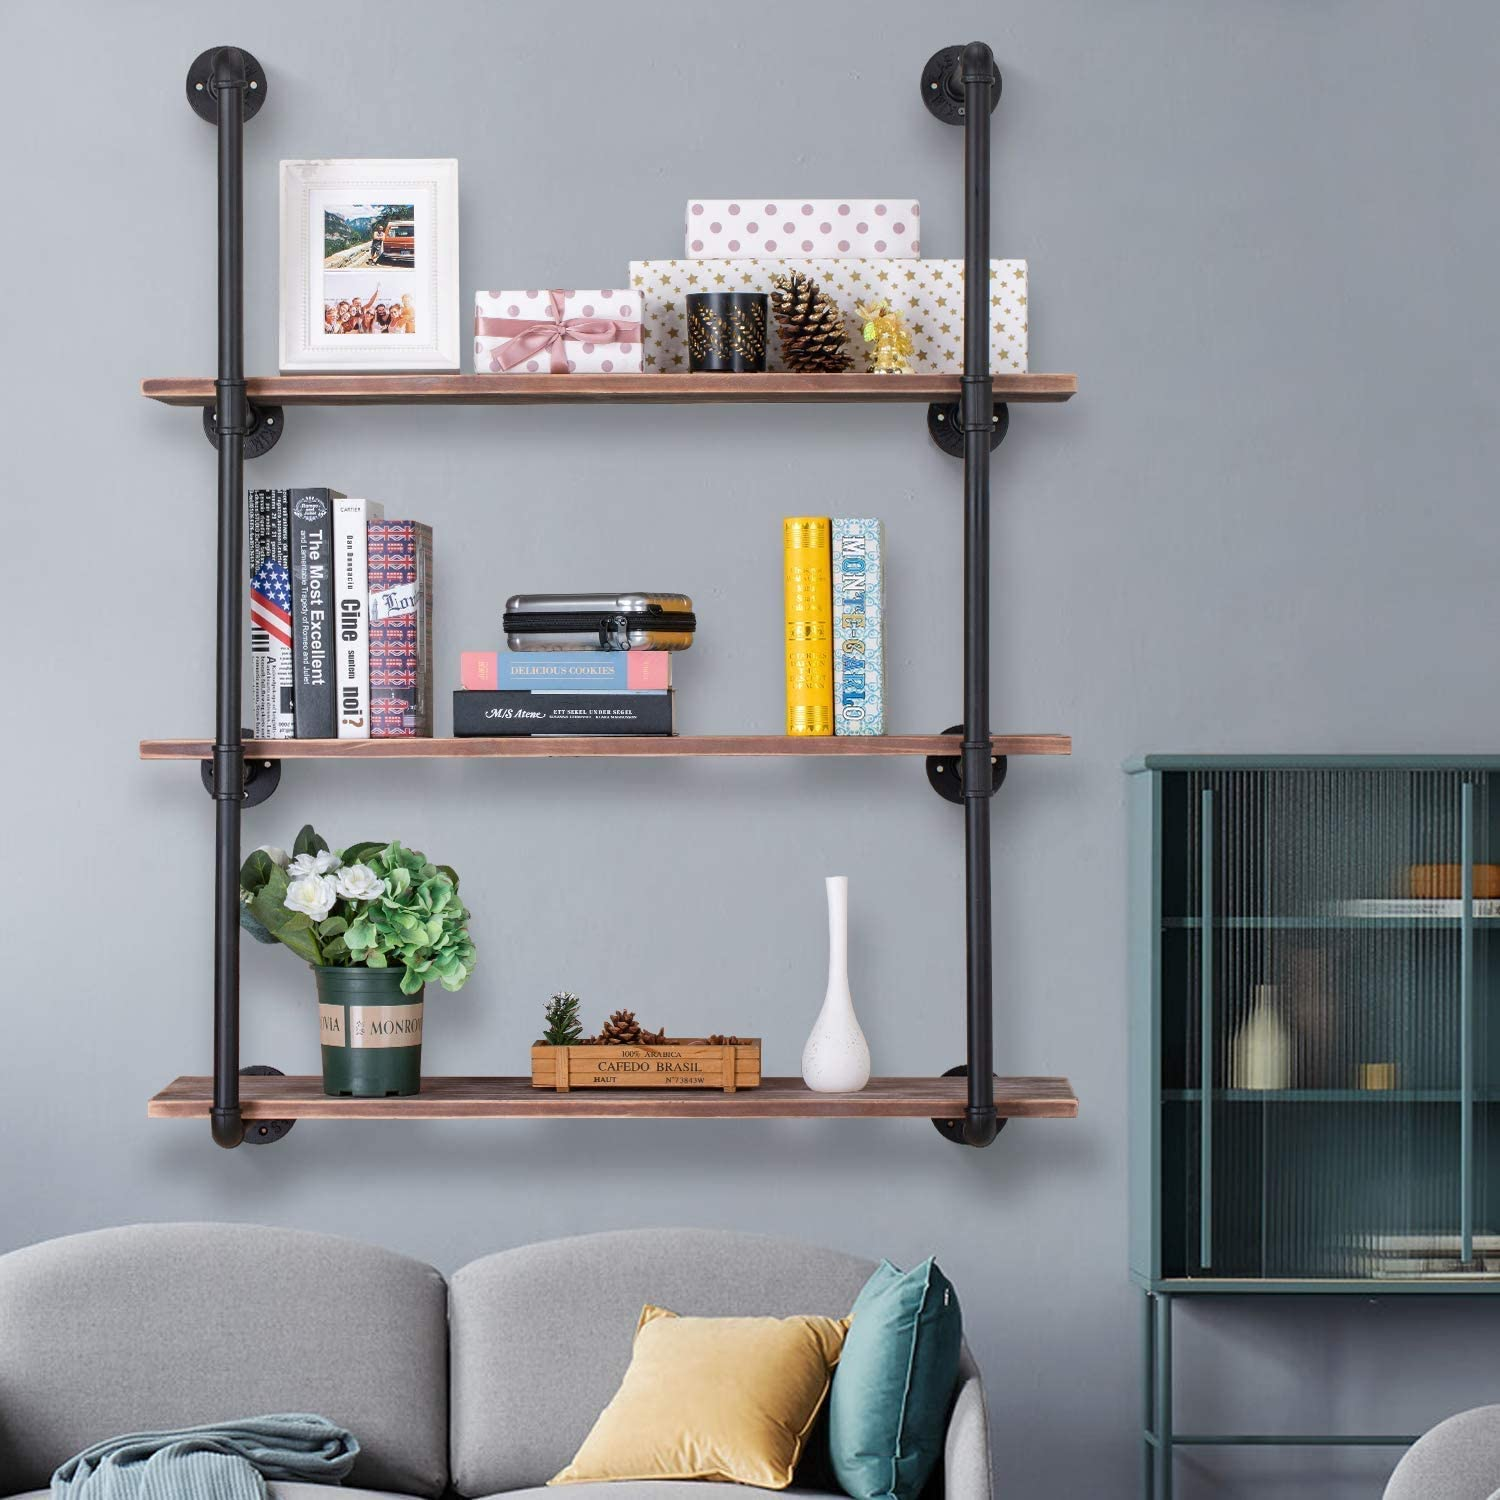 Pynsseu Industrial Iron Pipe Shelving Brackets Unit, Farmhouse Wall Mounted Pipe Shelves for Kitchen Bathroom, DIY Bookshelf Living Room Storage, 3Pack of 4 Tier